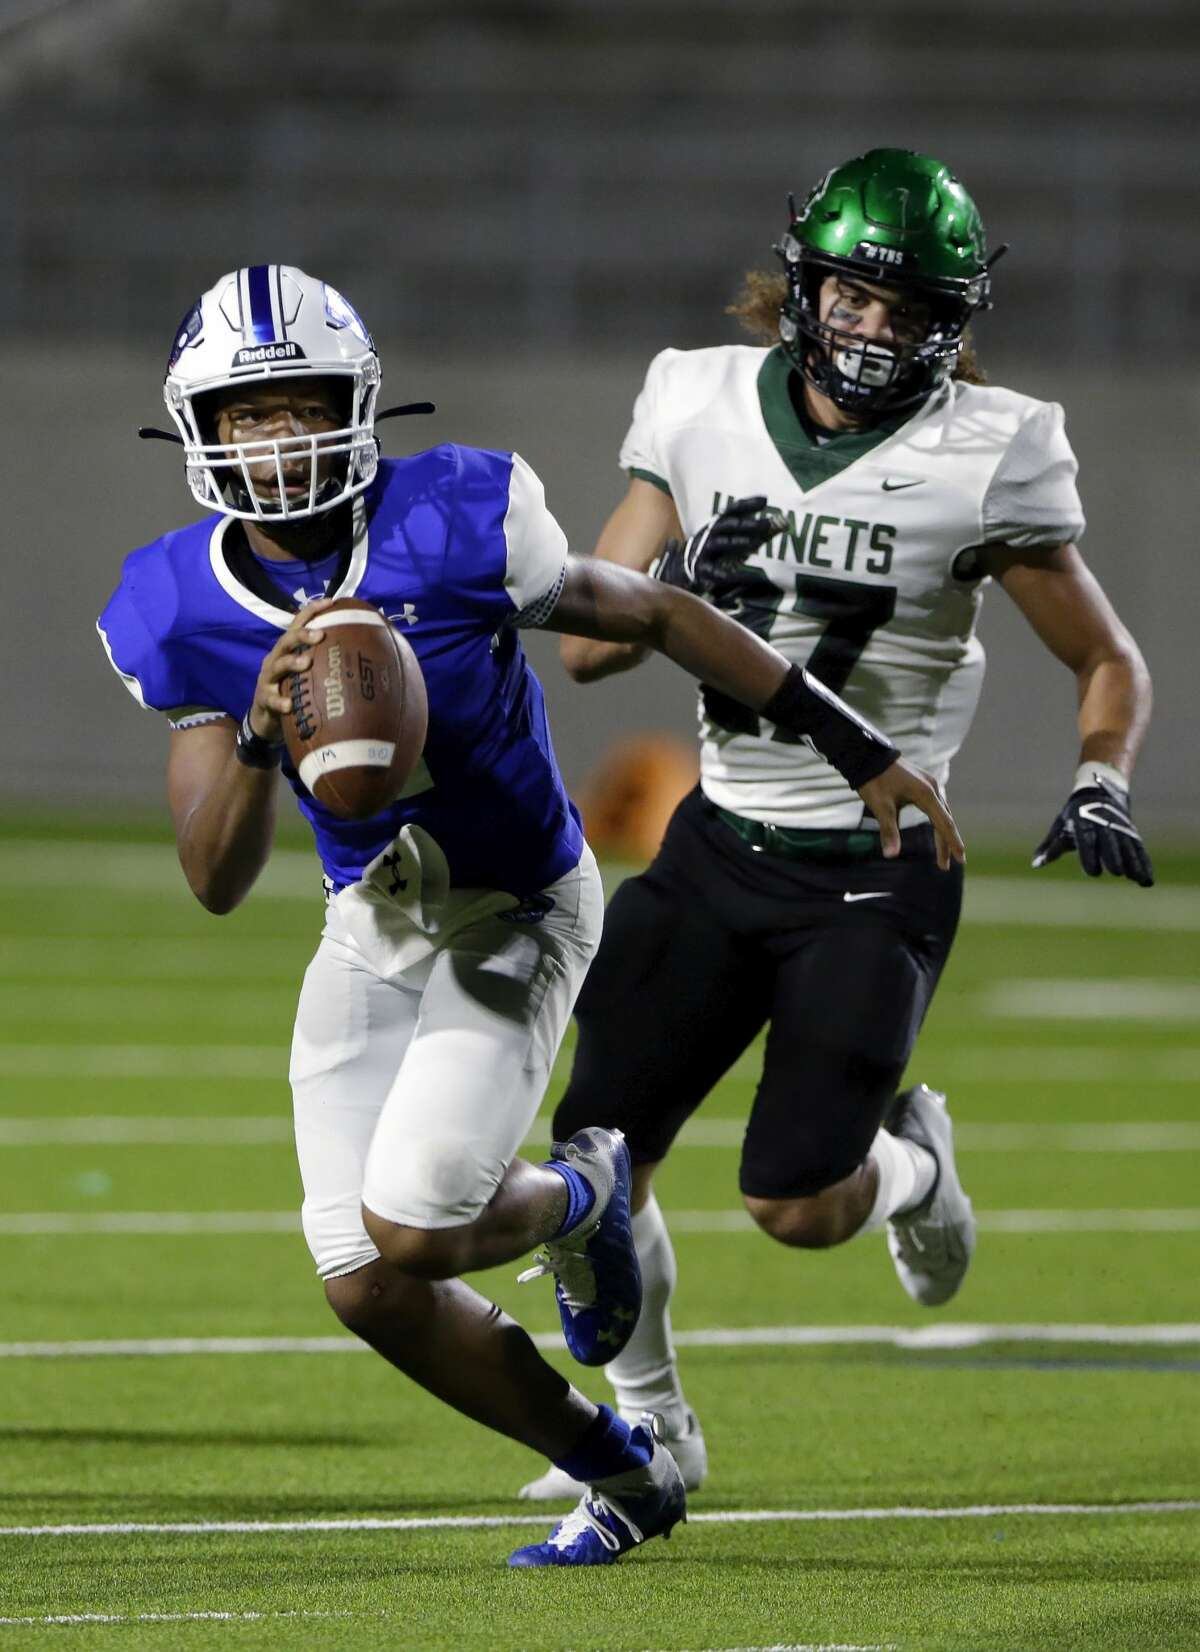 C.E. King quarterback Nehemiah Brousard, left, runs to avoid the sack by Huntsville defensive lineman Arthur Sandles (27) during the first half of a high school football game at Panther Stadium Friday, Sept. 17, 2021 in Houston, TX.